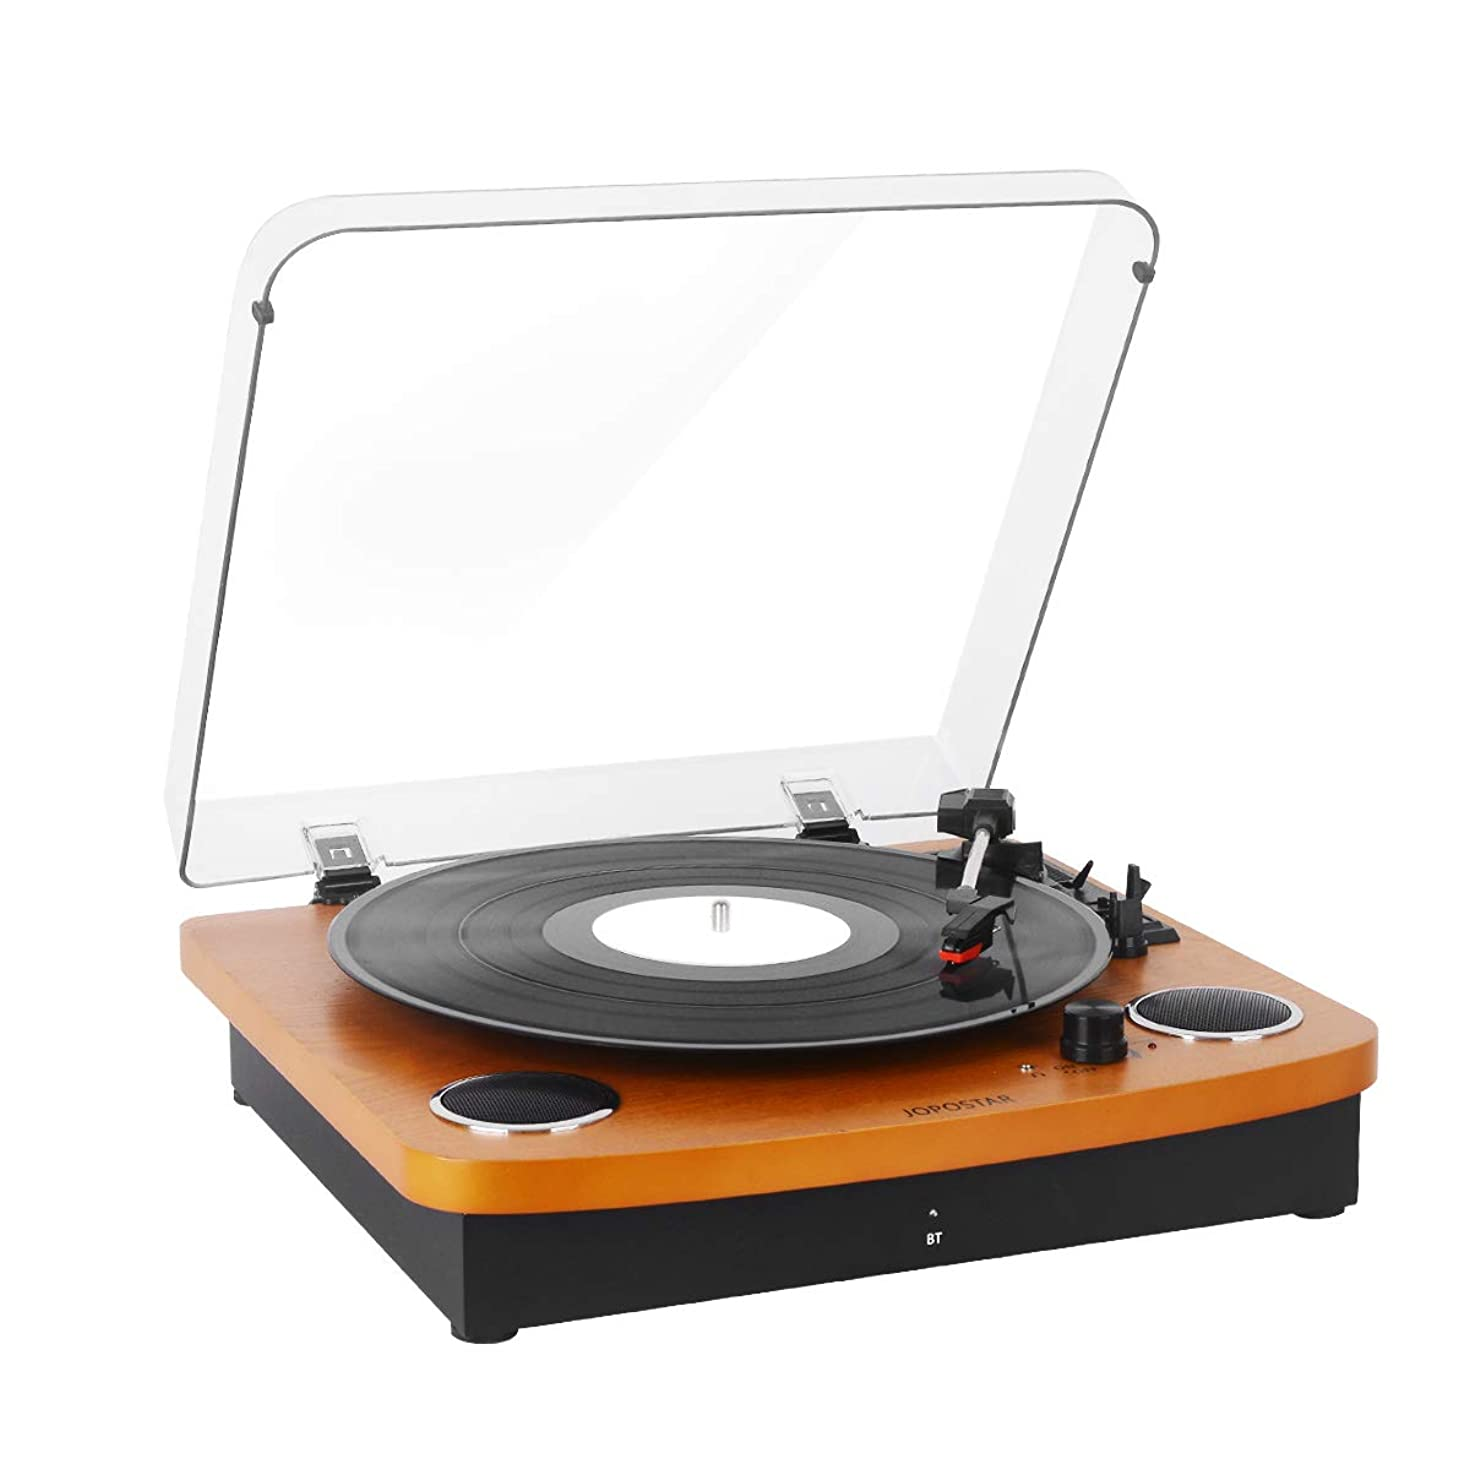 Record Player Vintage Vinyl Record Turntable Player with Bluetooth,LP 3-Speed Belt-Drive,RCA Output,3.5mm Aux Input,Headphone Jack